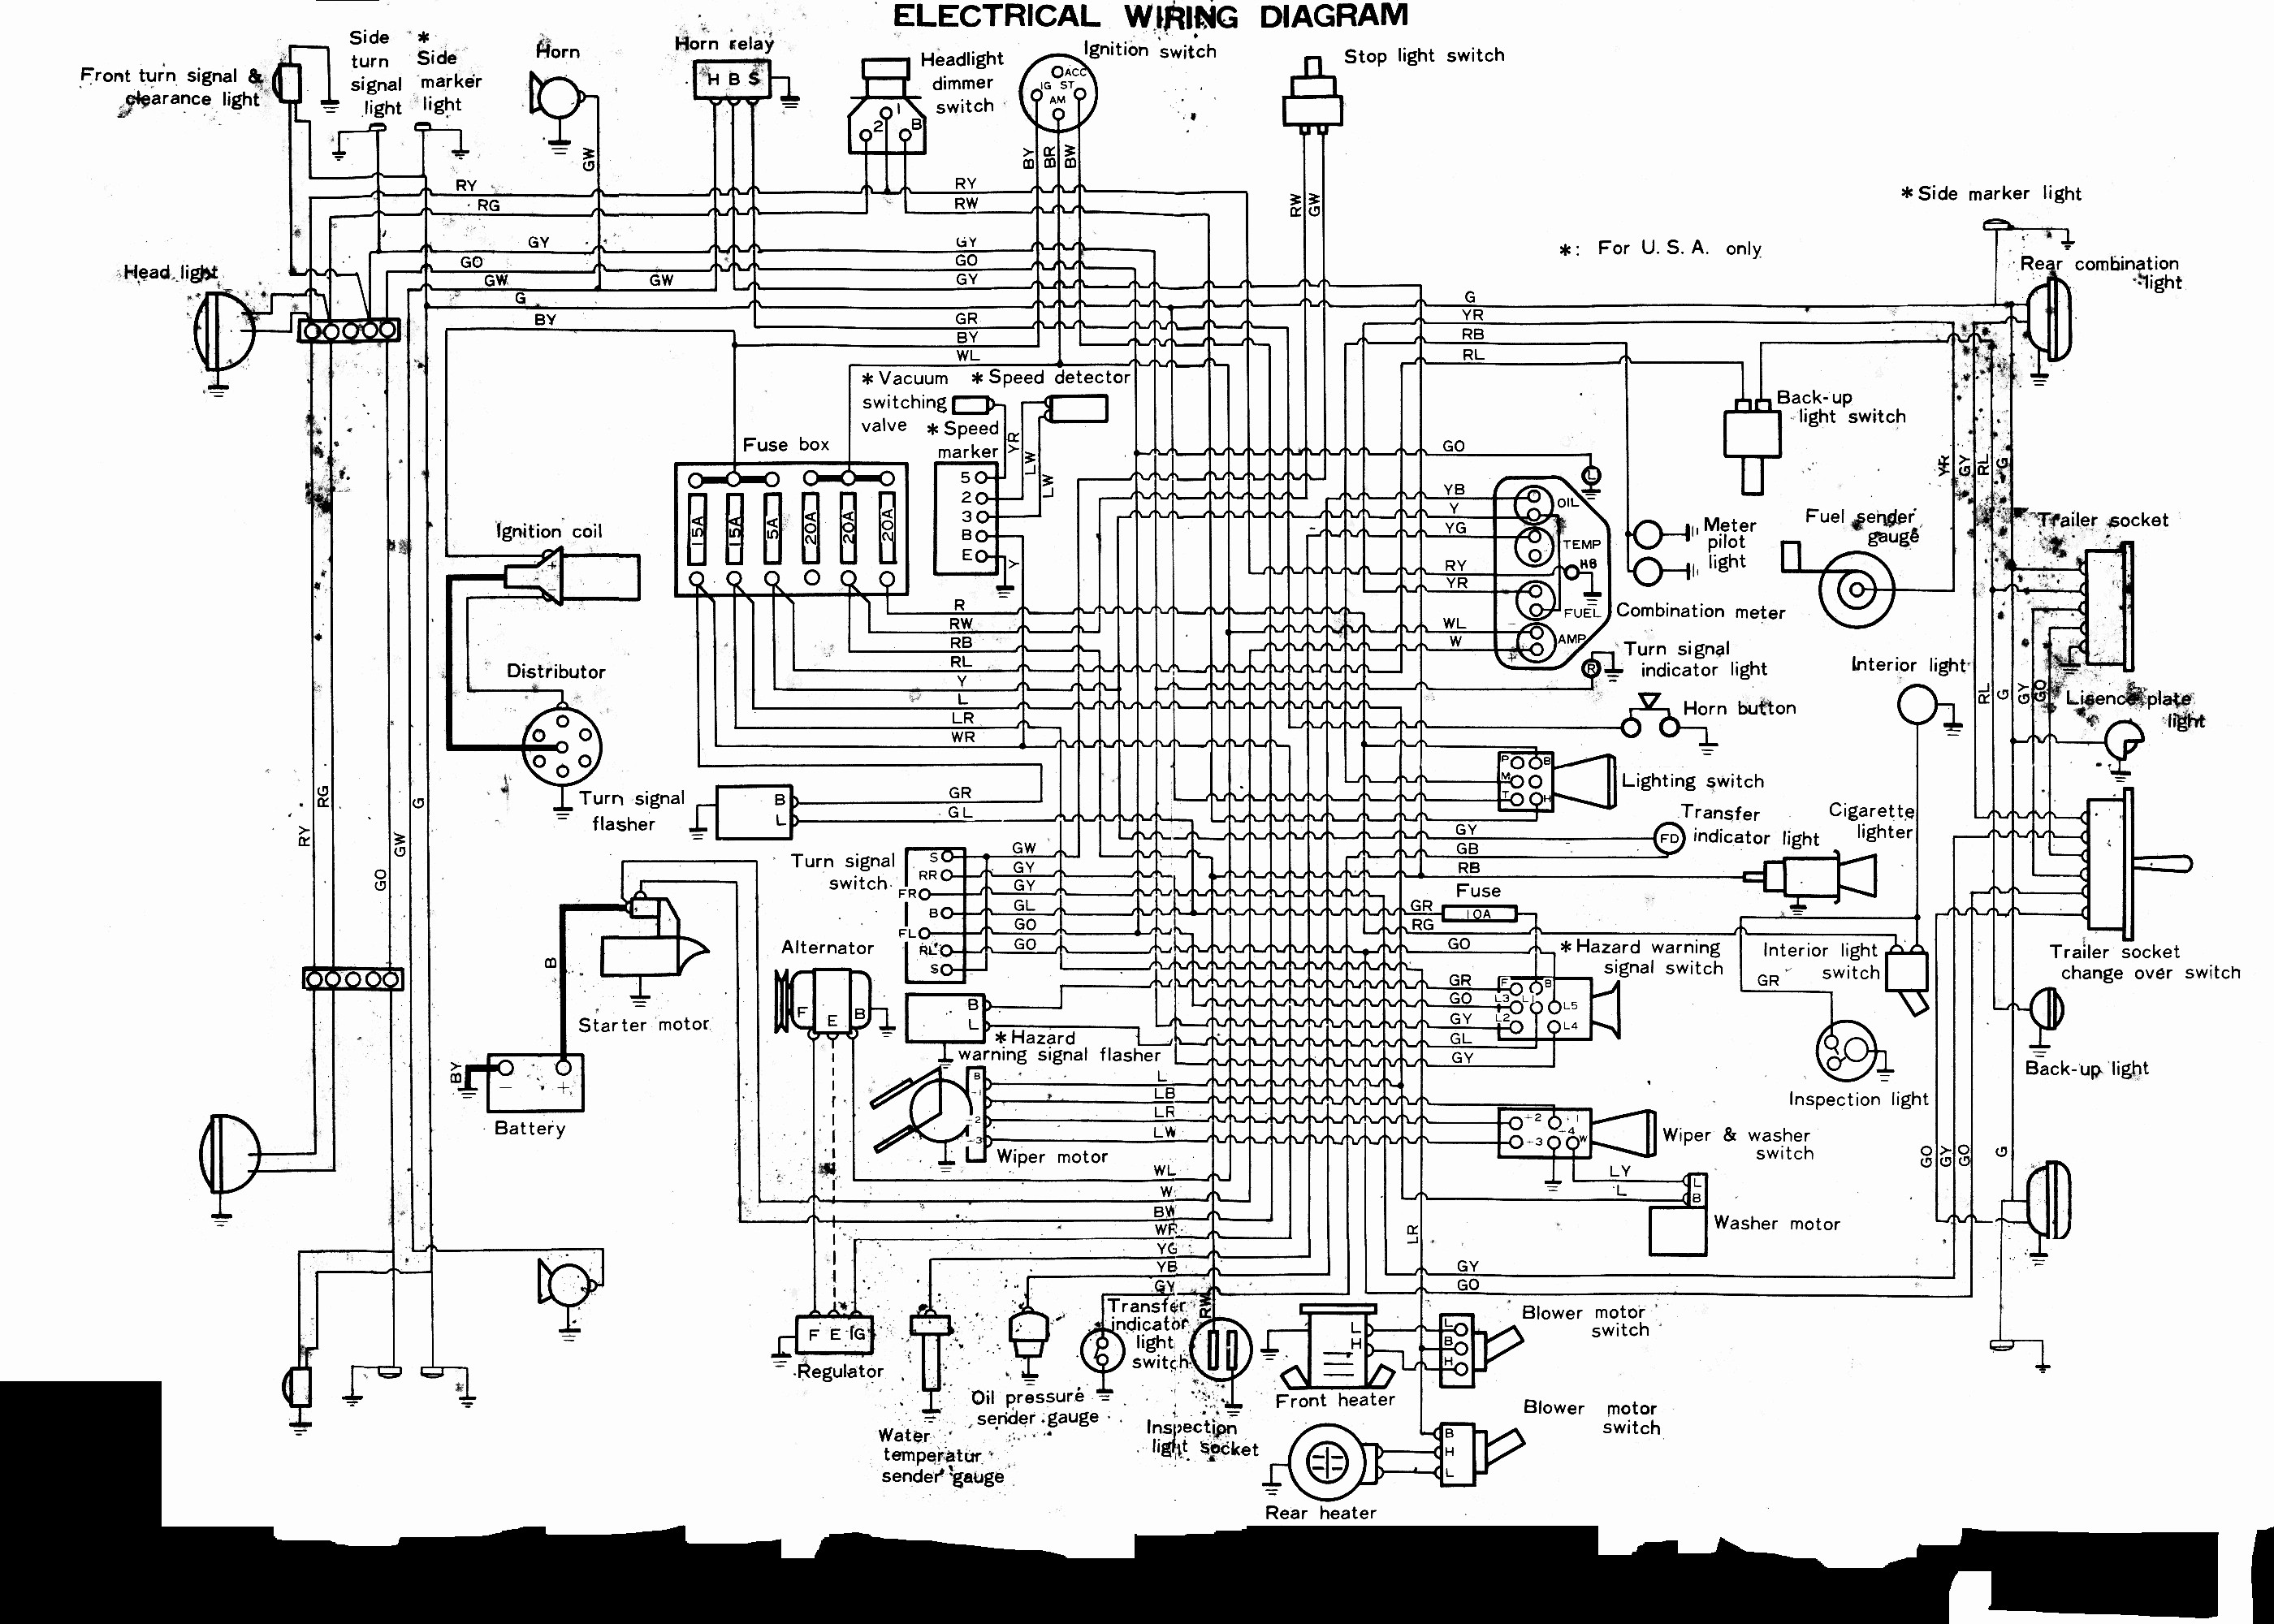 35 2004 Chrysler Sebring Wiring Diagram - Wire Diagram ...